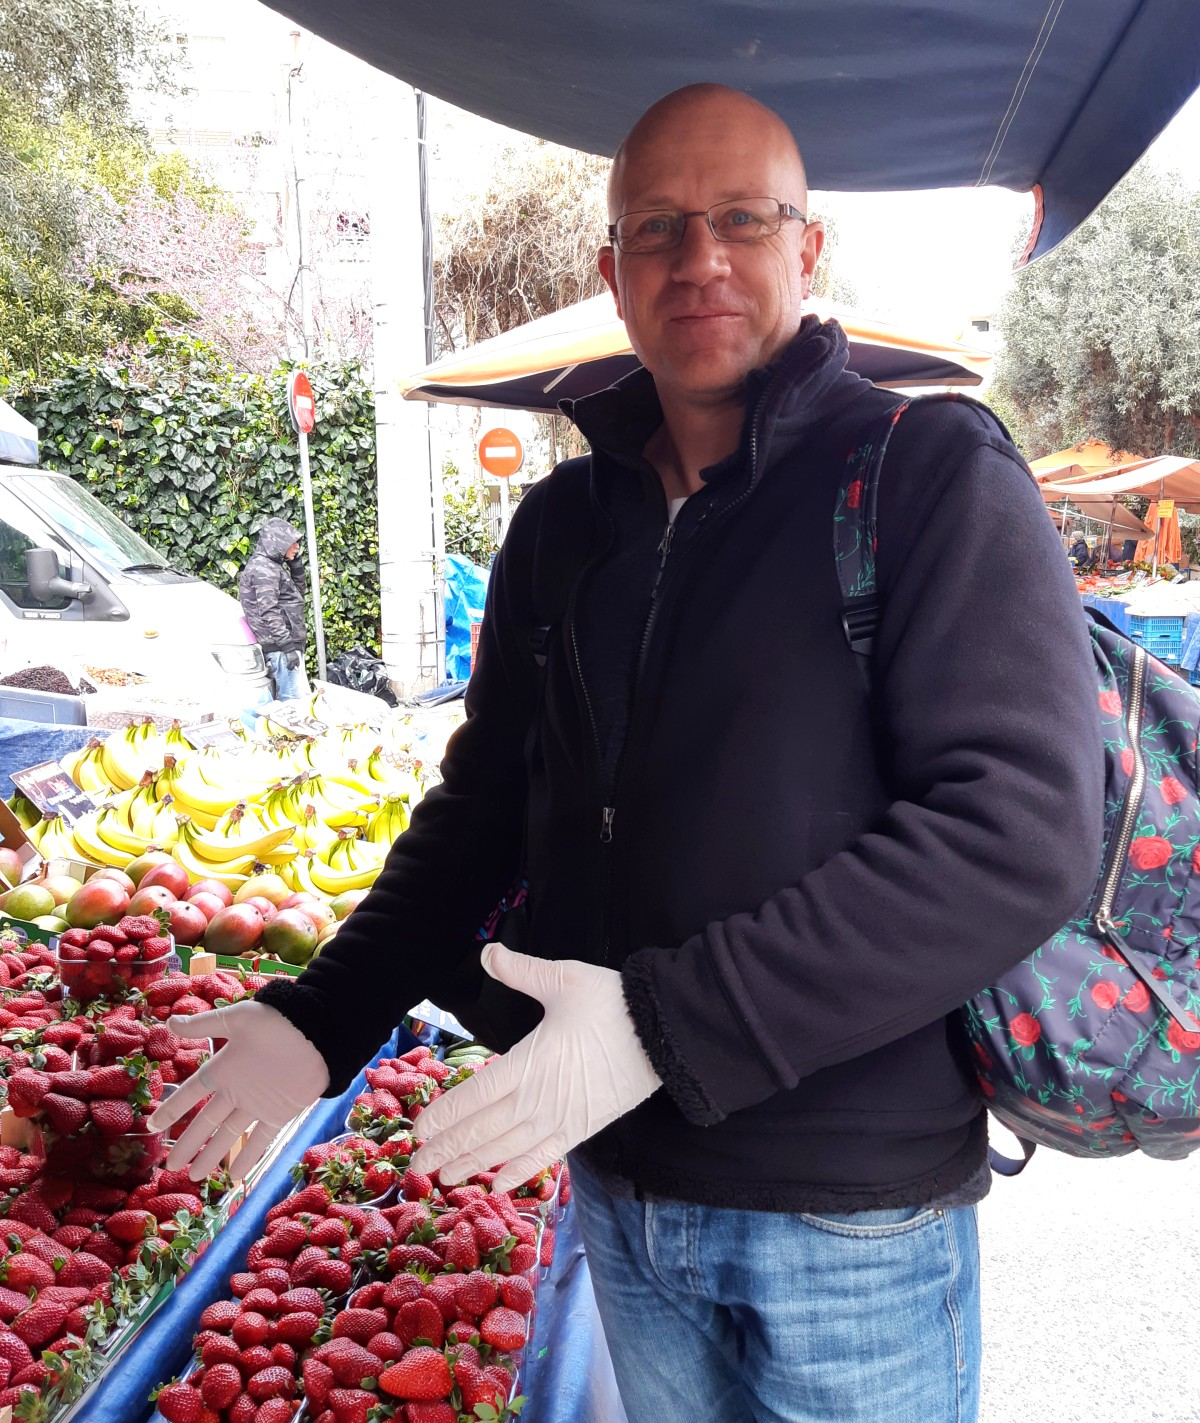 Coronavirus in Greece - Street market